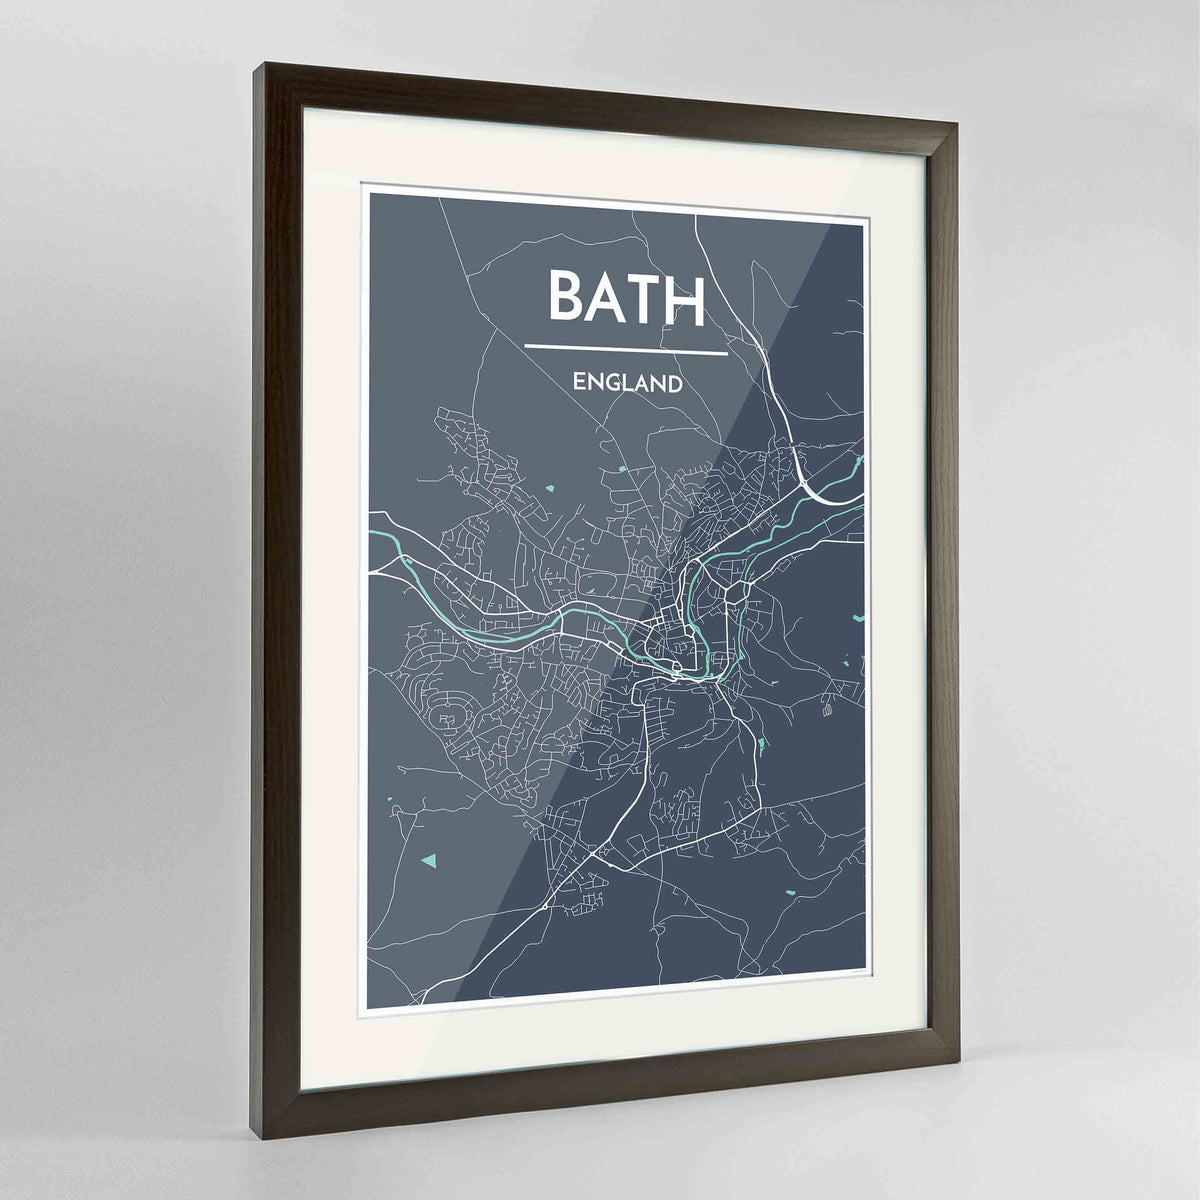 "Framed Bath Map Art Print 24x36"" Contemporary Walnut frame Point Two Design Group"